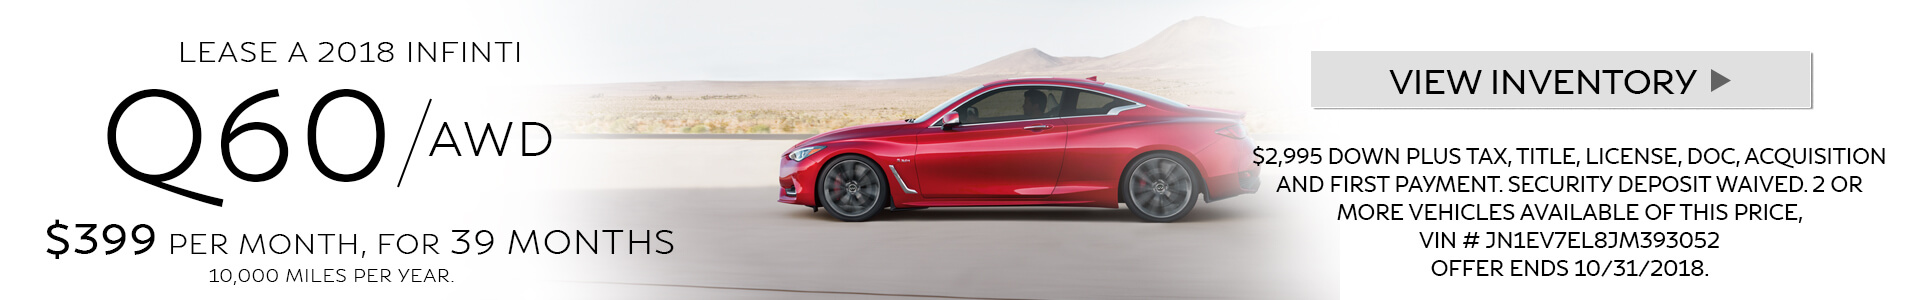 Q60 Lease Special